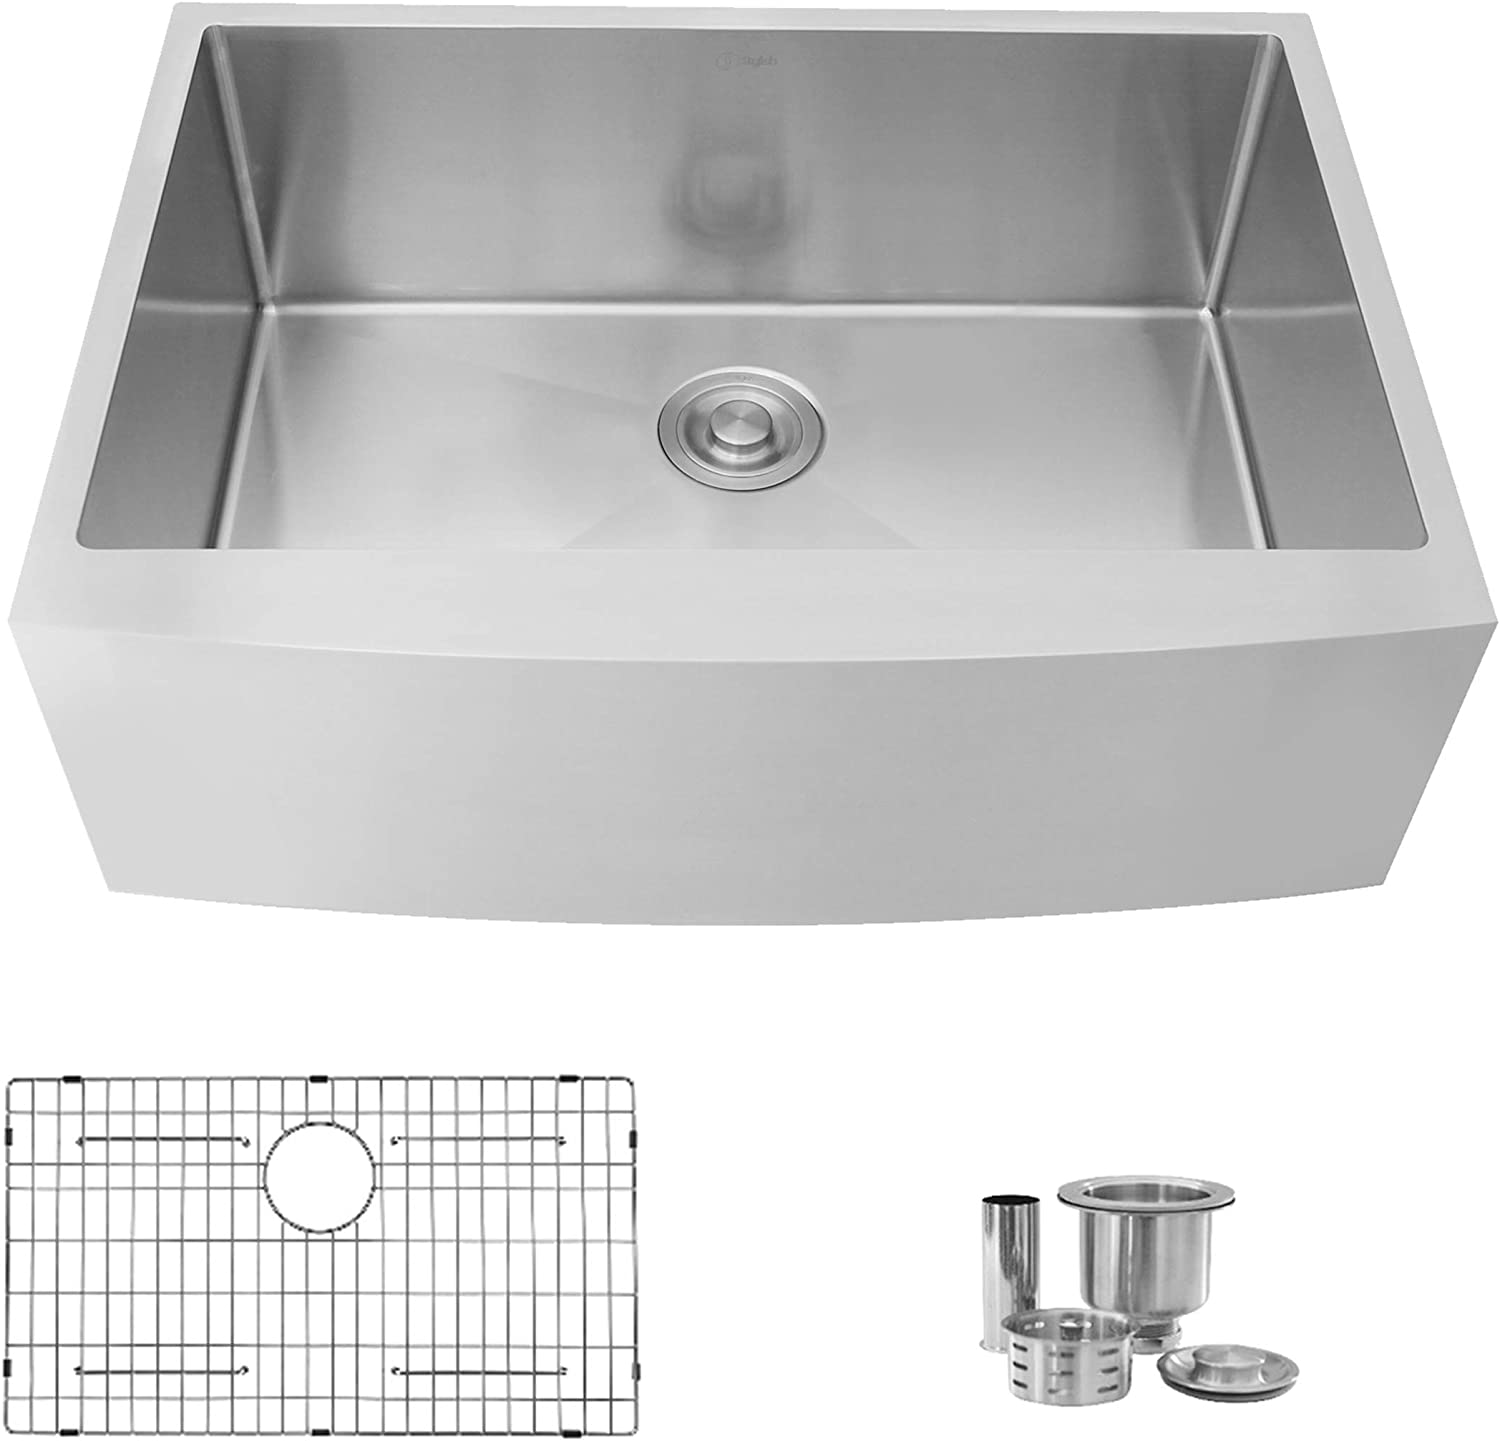 30 L X 22 W Stainless Steel Single Bowl Undermount 16g Farmhouse Kitchen Sink With Grid And Strainer S 316xg Amazon Ca Tools Home Improvement